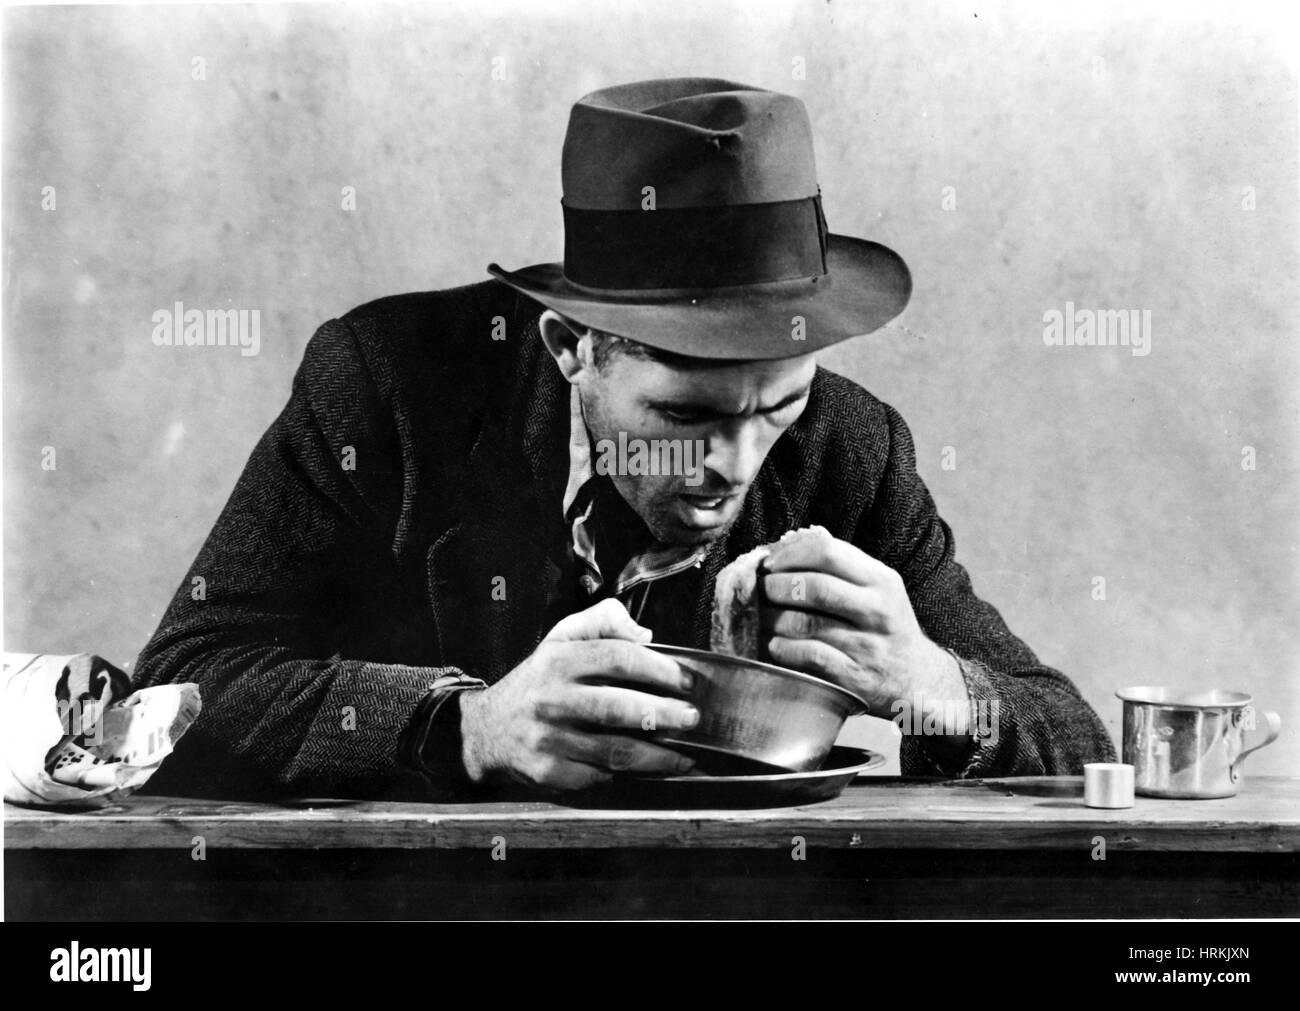 Homeless Man Eating in a Soup Kitchen - Stock Image